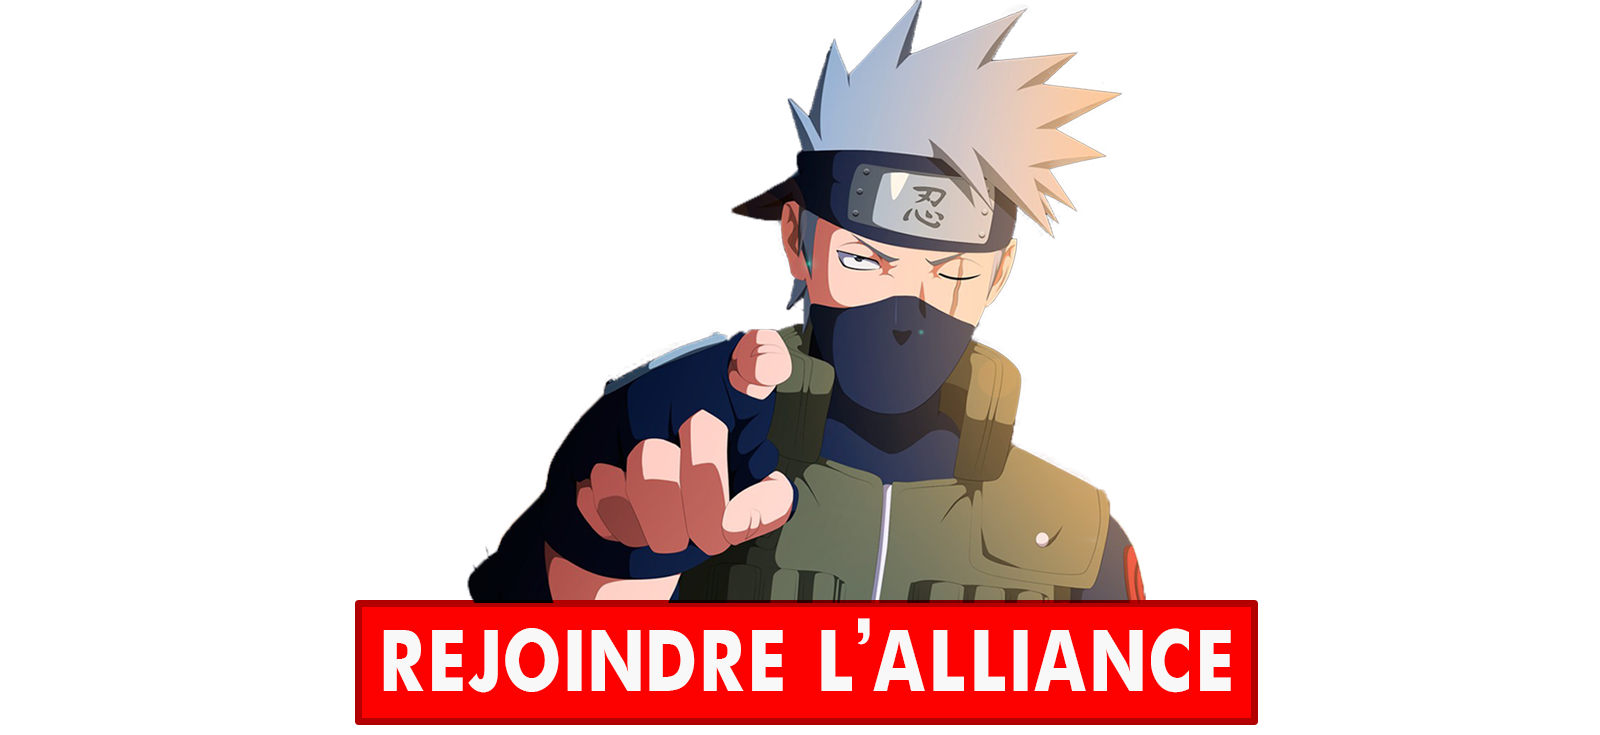 Rejoindre l'Alliance